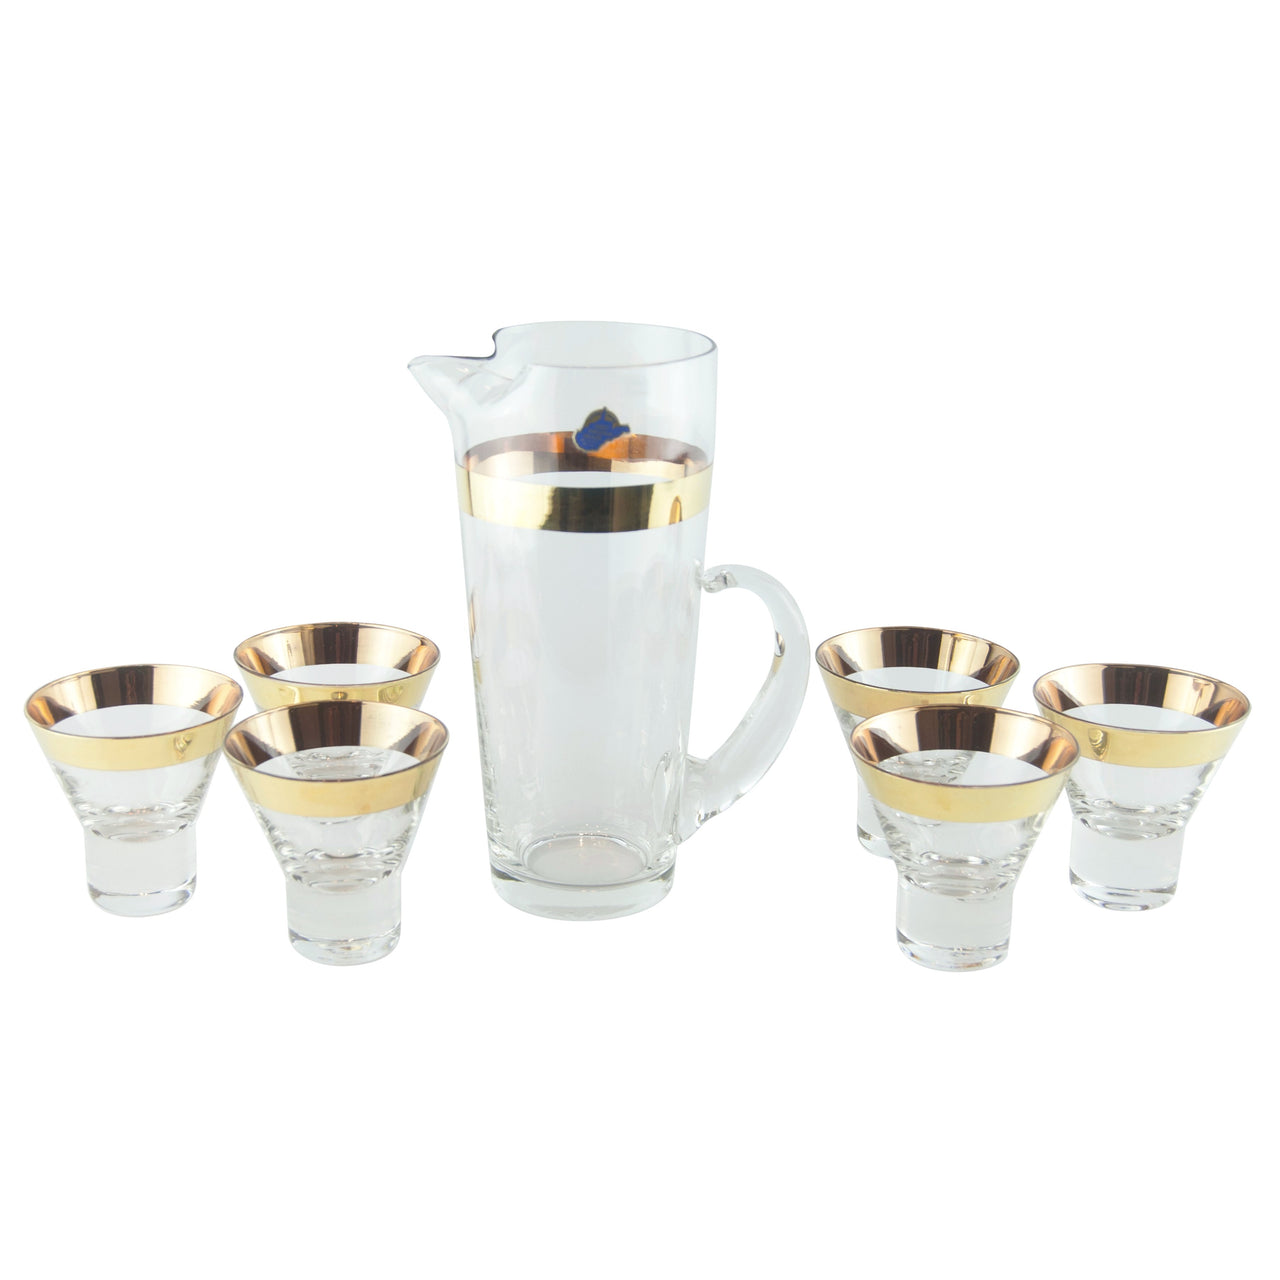 W. Virginia Gold Band Cocktail Pitcher Set | The Hour Vintage